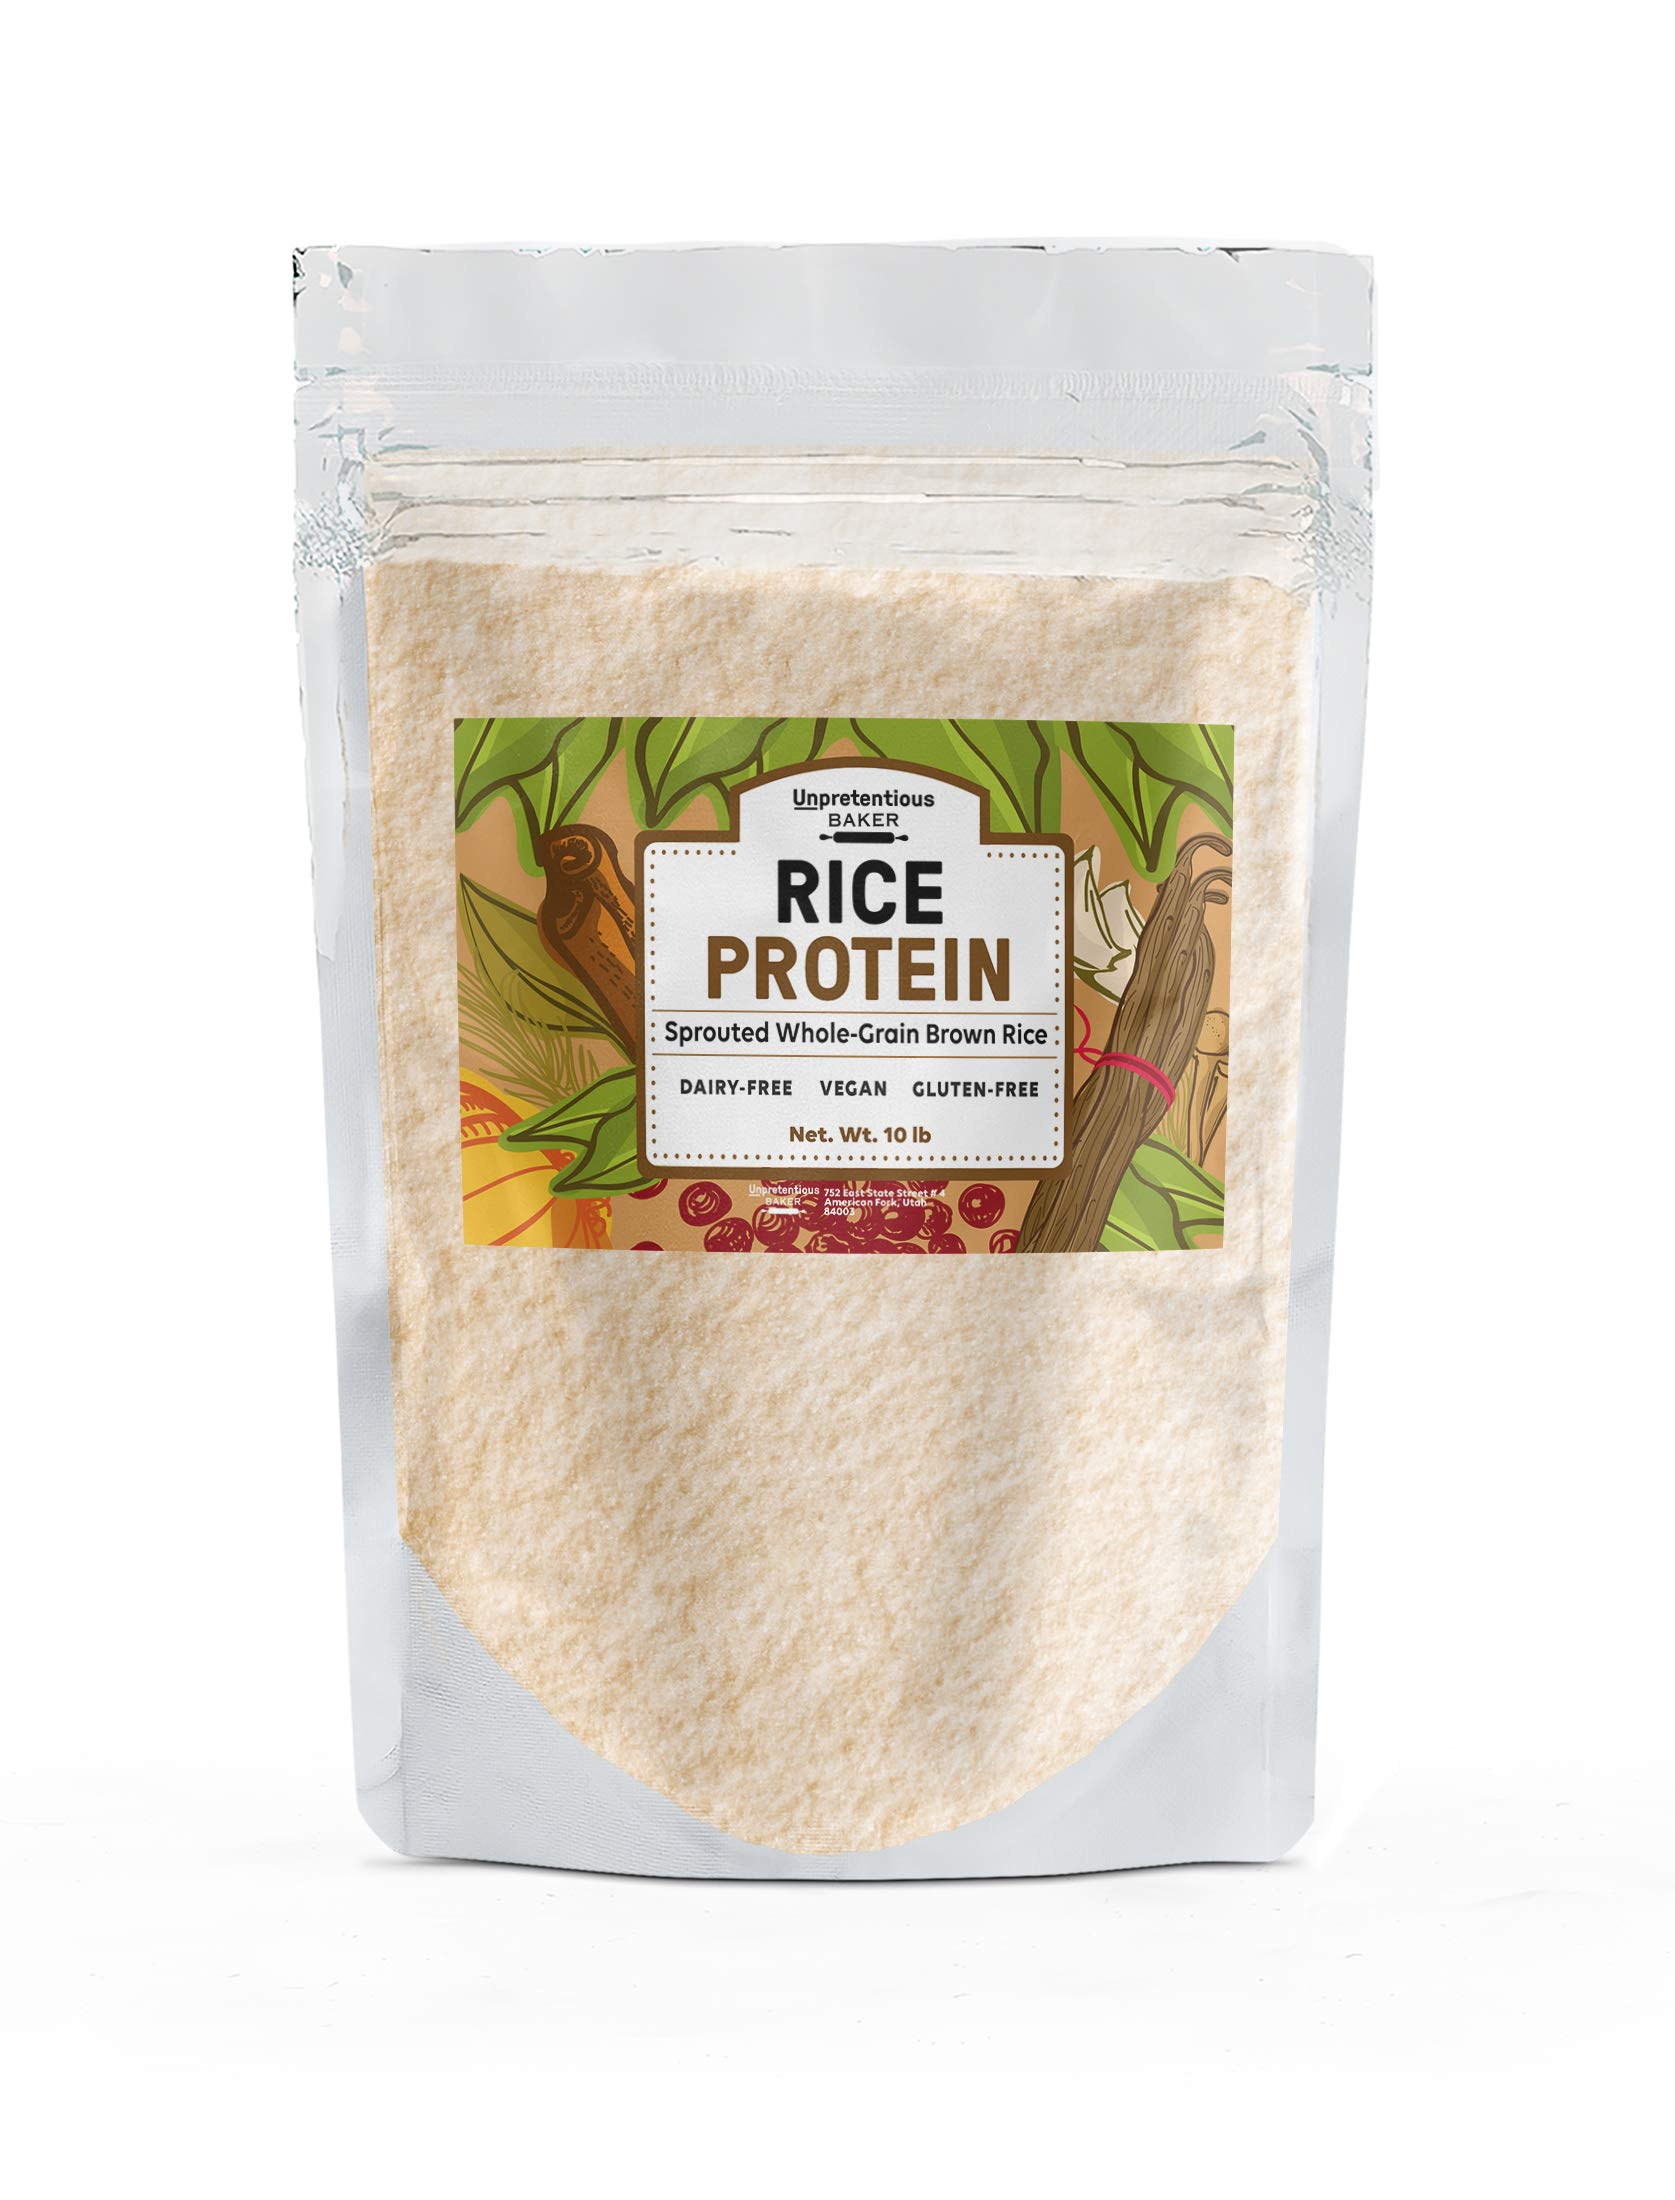 Rice Protein Powder, 10 lbs. by Unpretentious Baker, Sustainably Sourced, Vegan & Gluten-Free Alternative to Whey or Soy Protein to Assist with Post-Training Recovery, Eco-Friendly Packaging